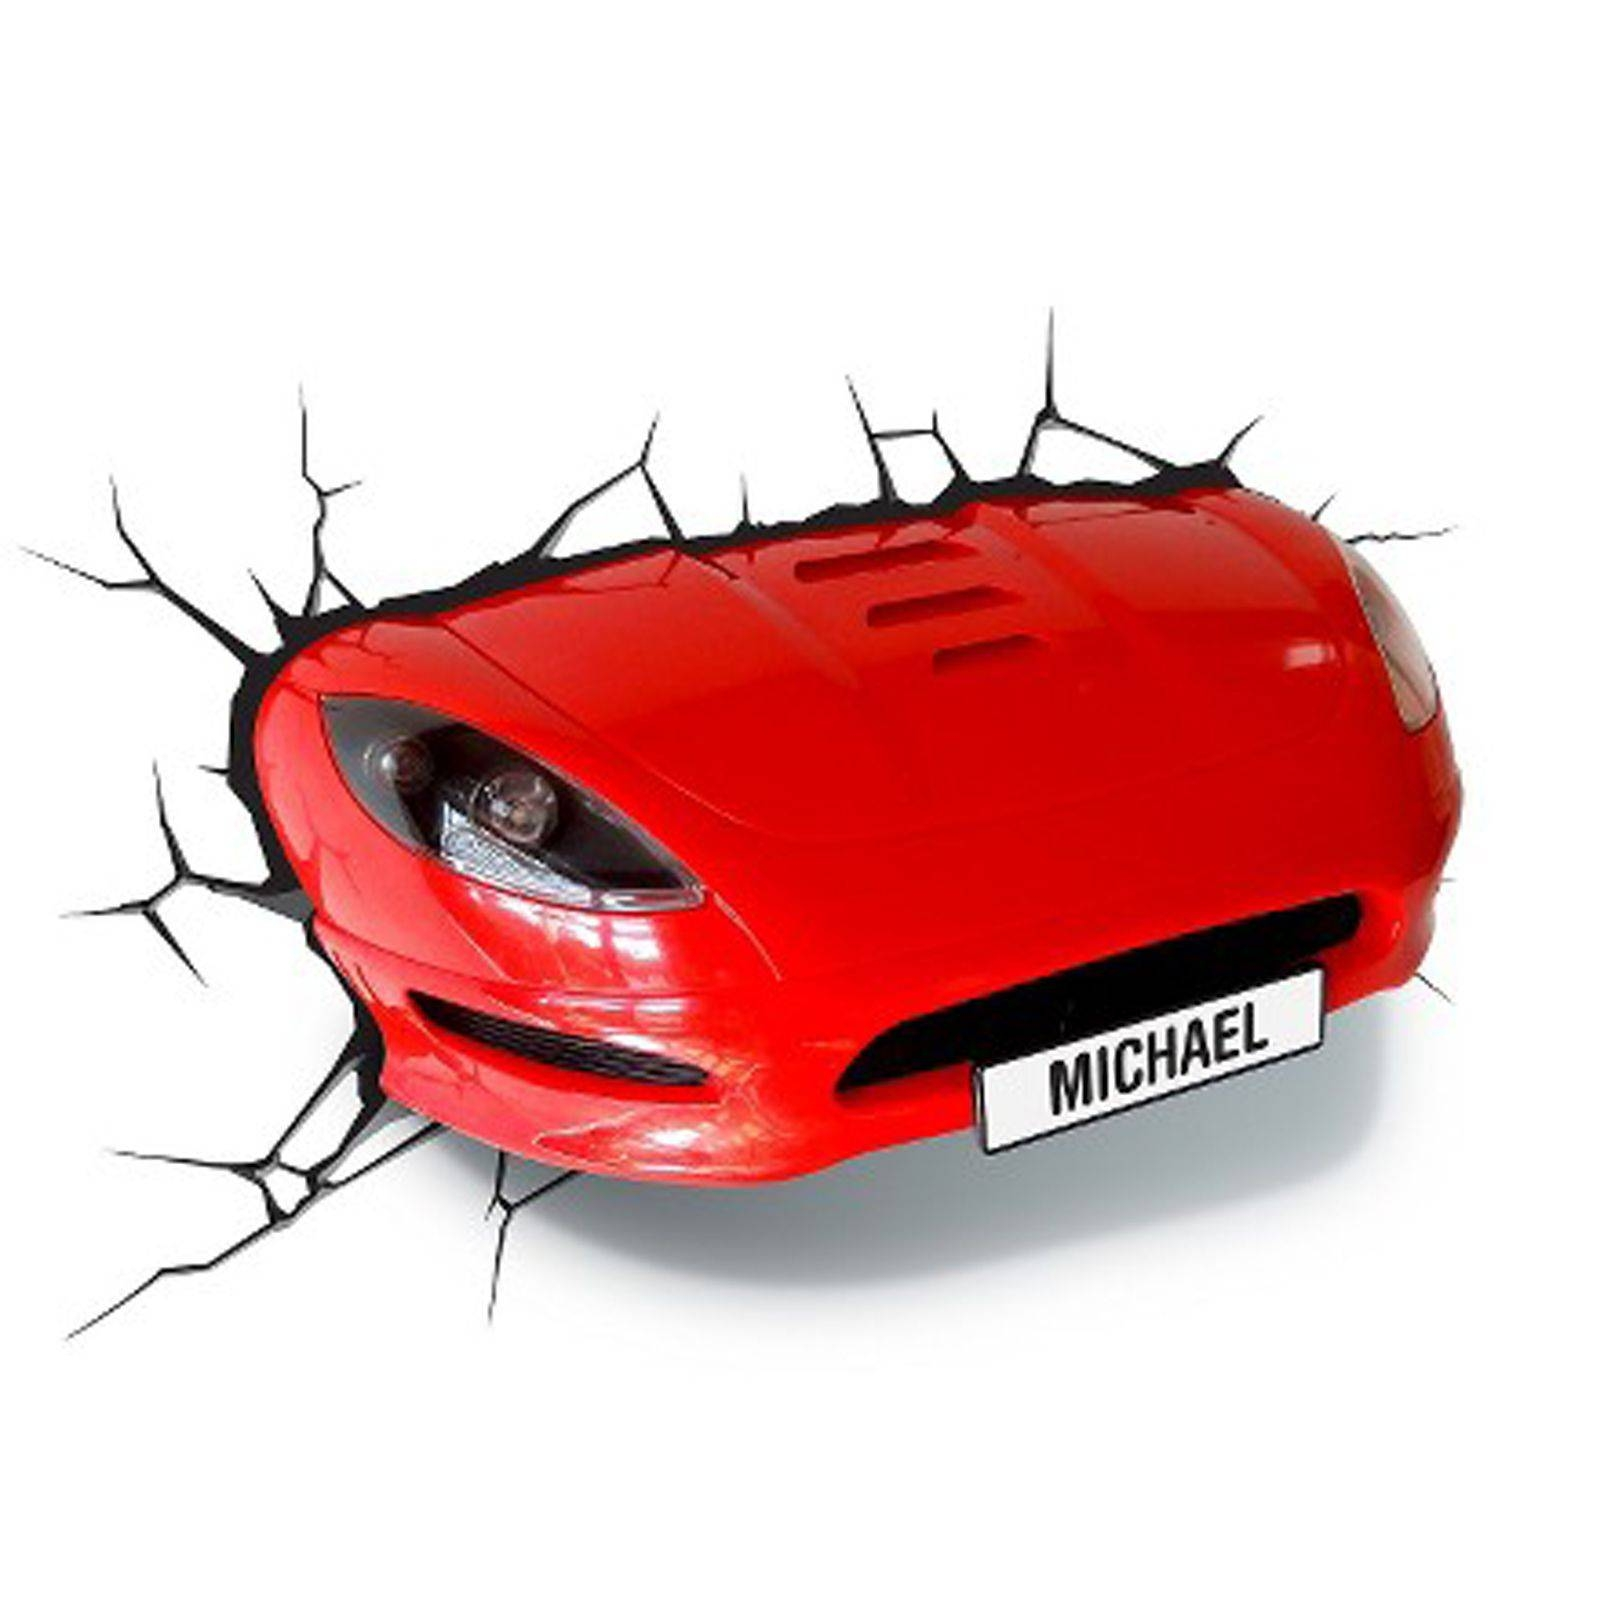 Red Sports Car 3D Effect Wall Light Lamp New Bedroom Decor | Ebay For Best And Newest 3D Effect Wall Art (Gallery 17 of 20)